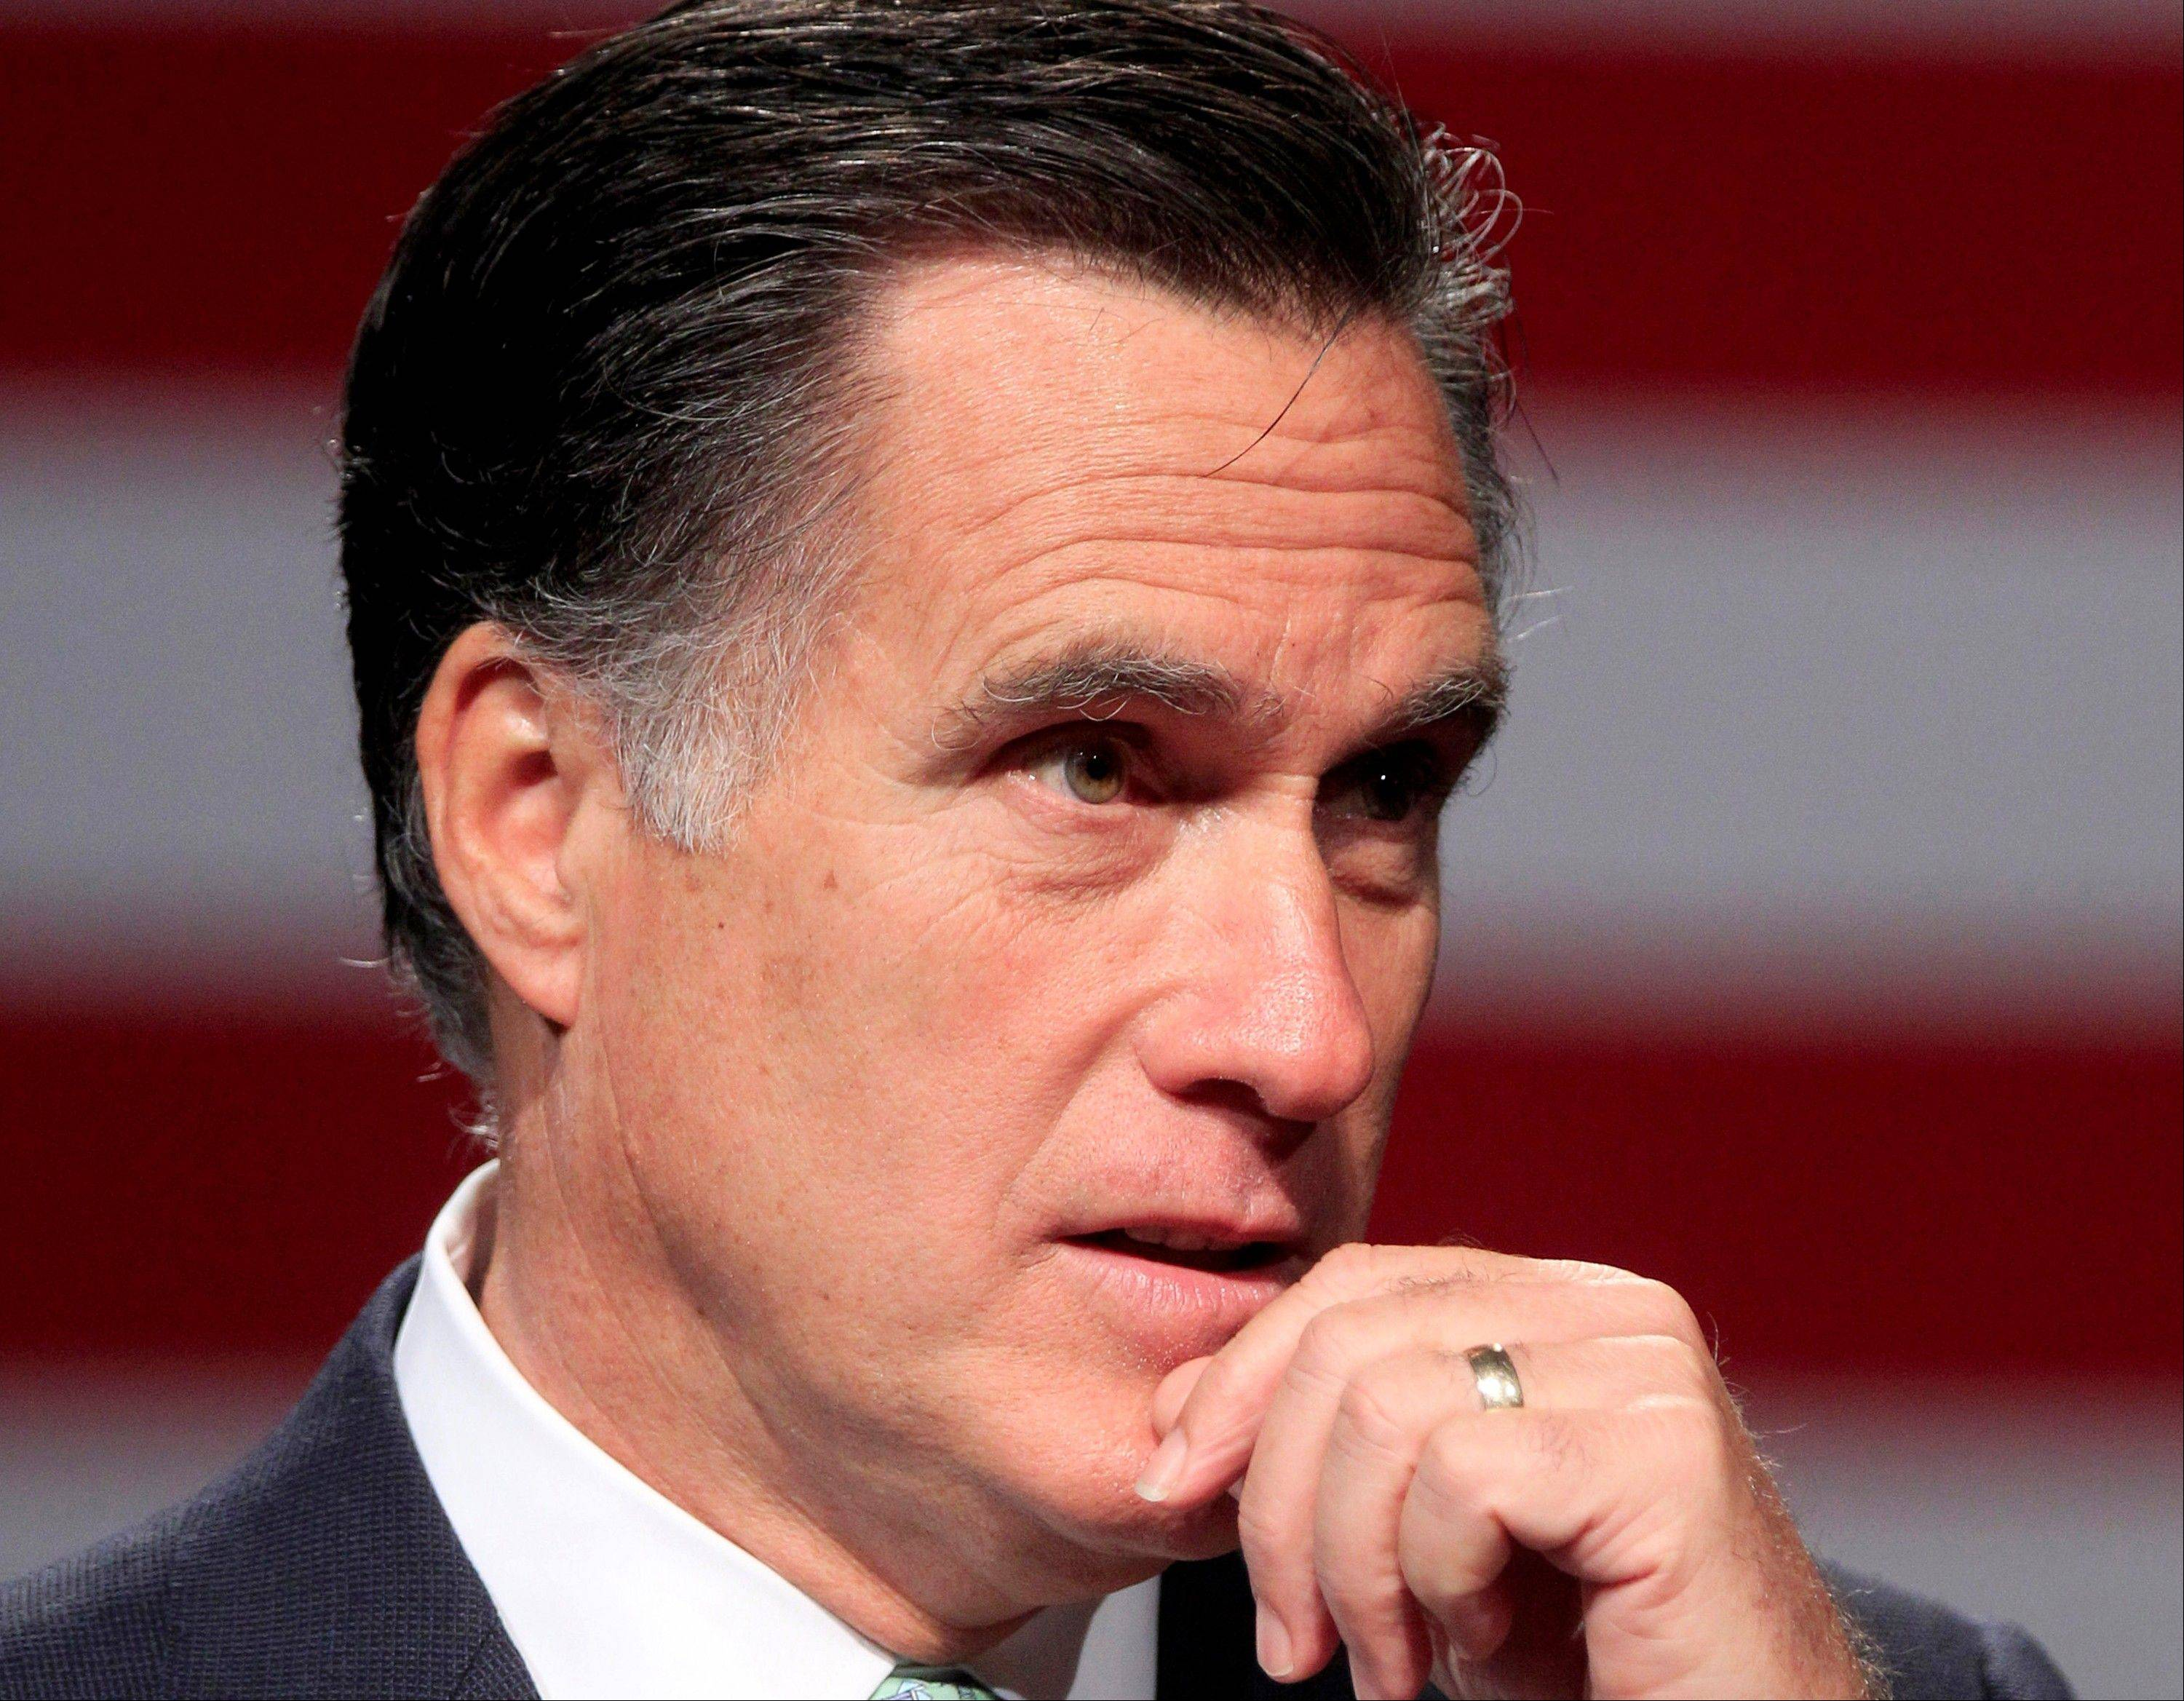 Republican presidential candidate Mitt Romney has said he had no active role in Bain Capital, the private equity firm he founded, after he exited in February 1999 to take over Salt Lake City�s Winter Olympics bid.